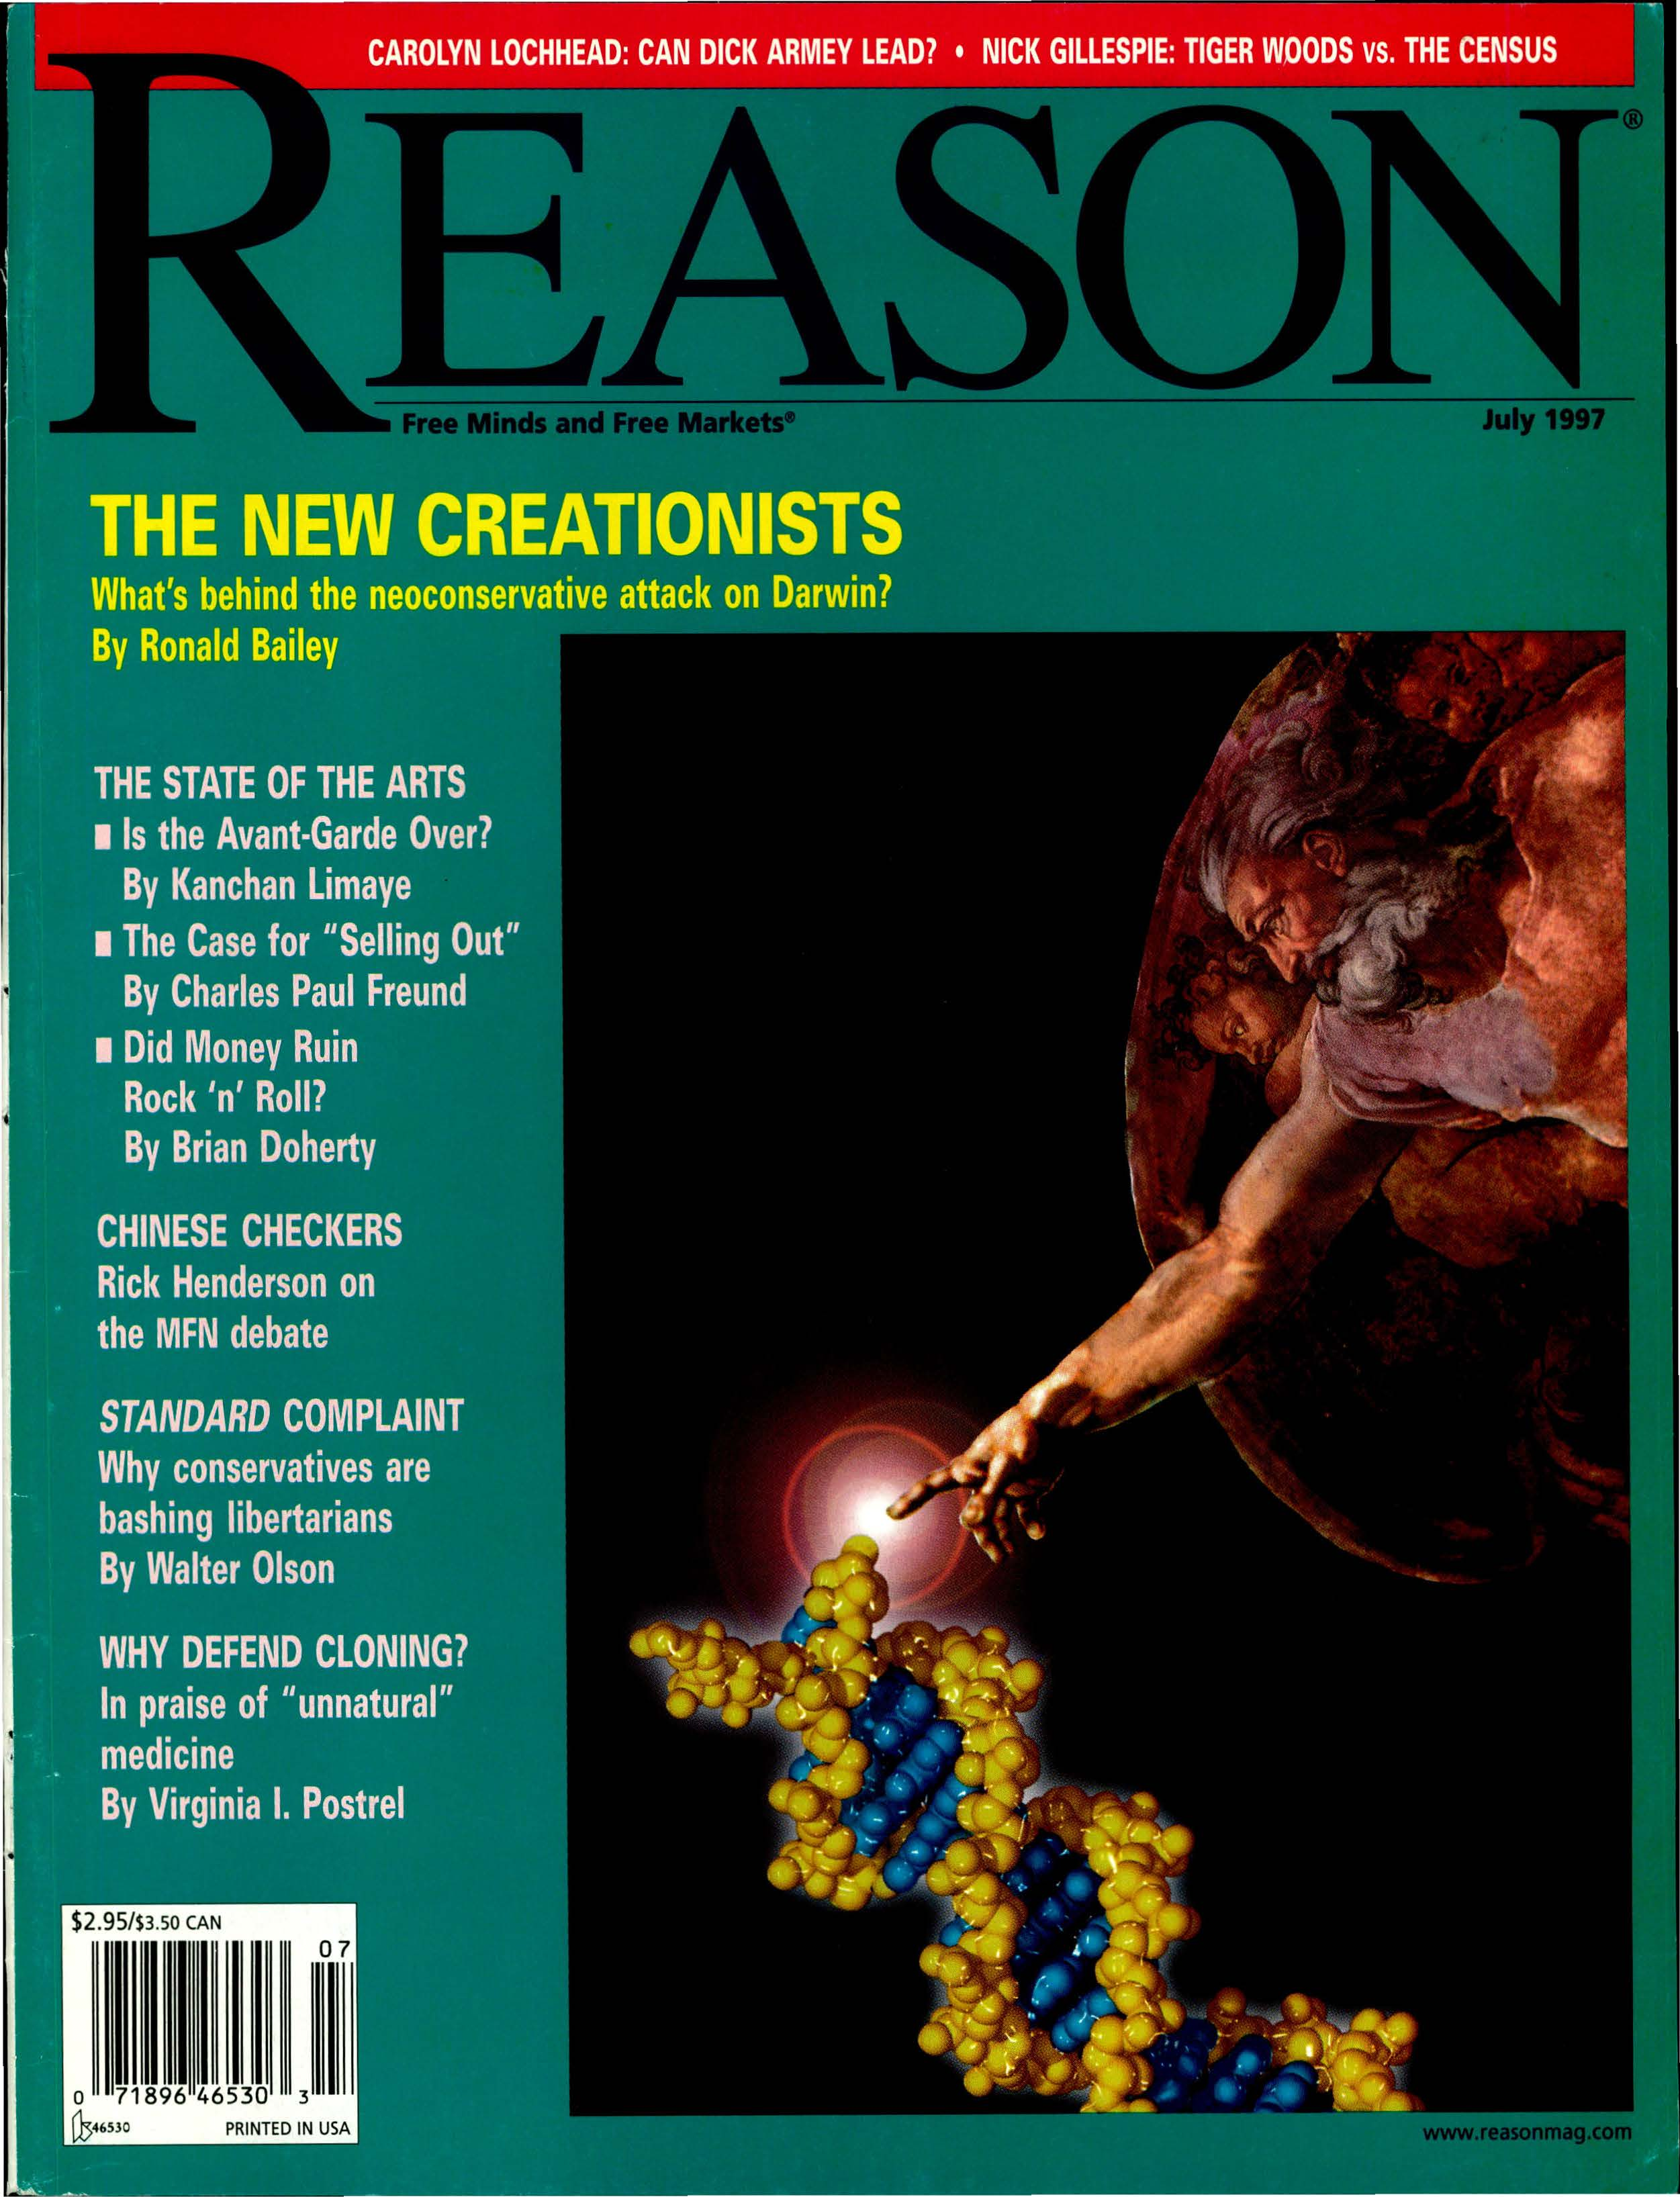 Reason Magazine, July 1997 cover image